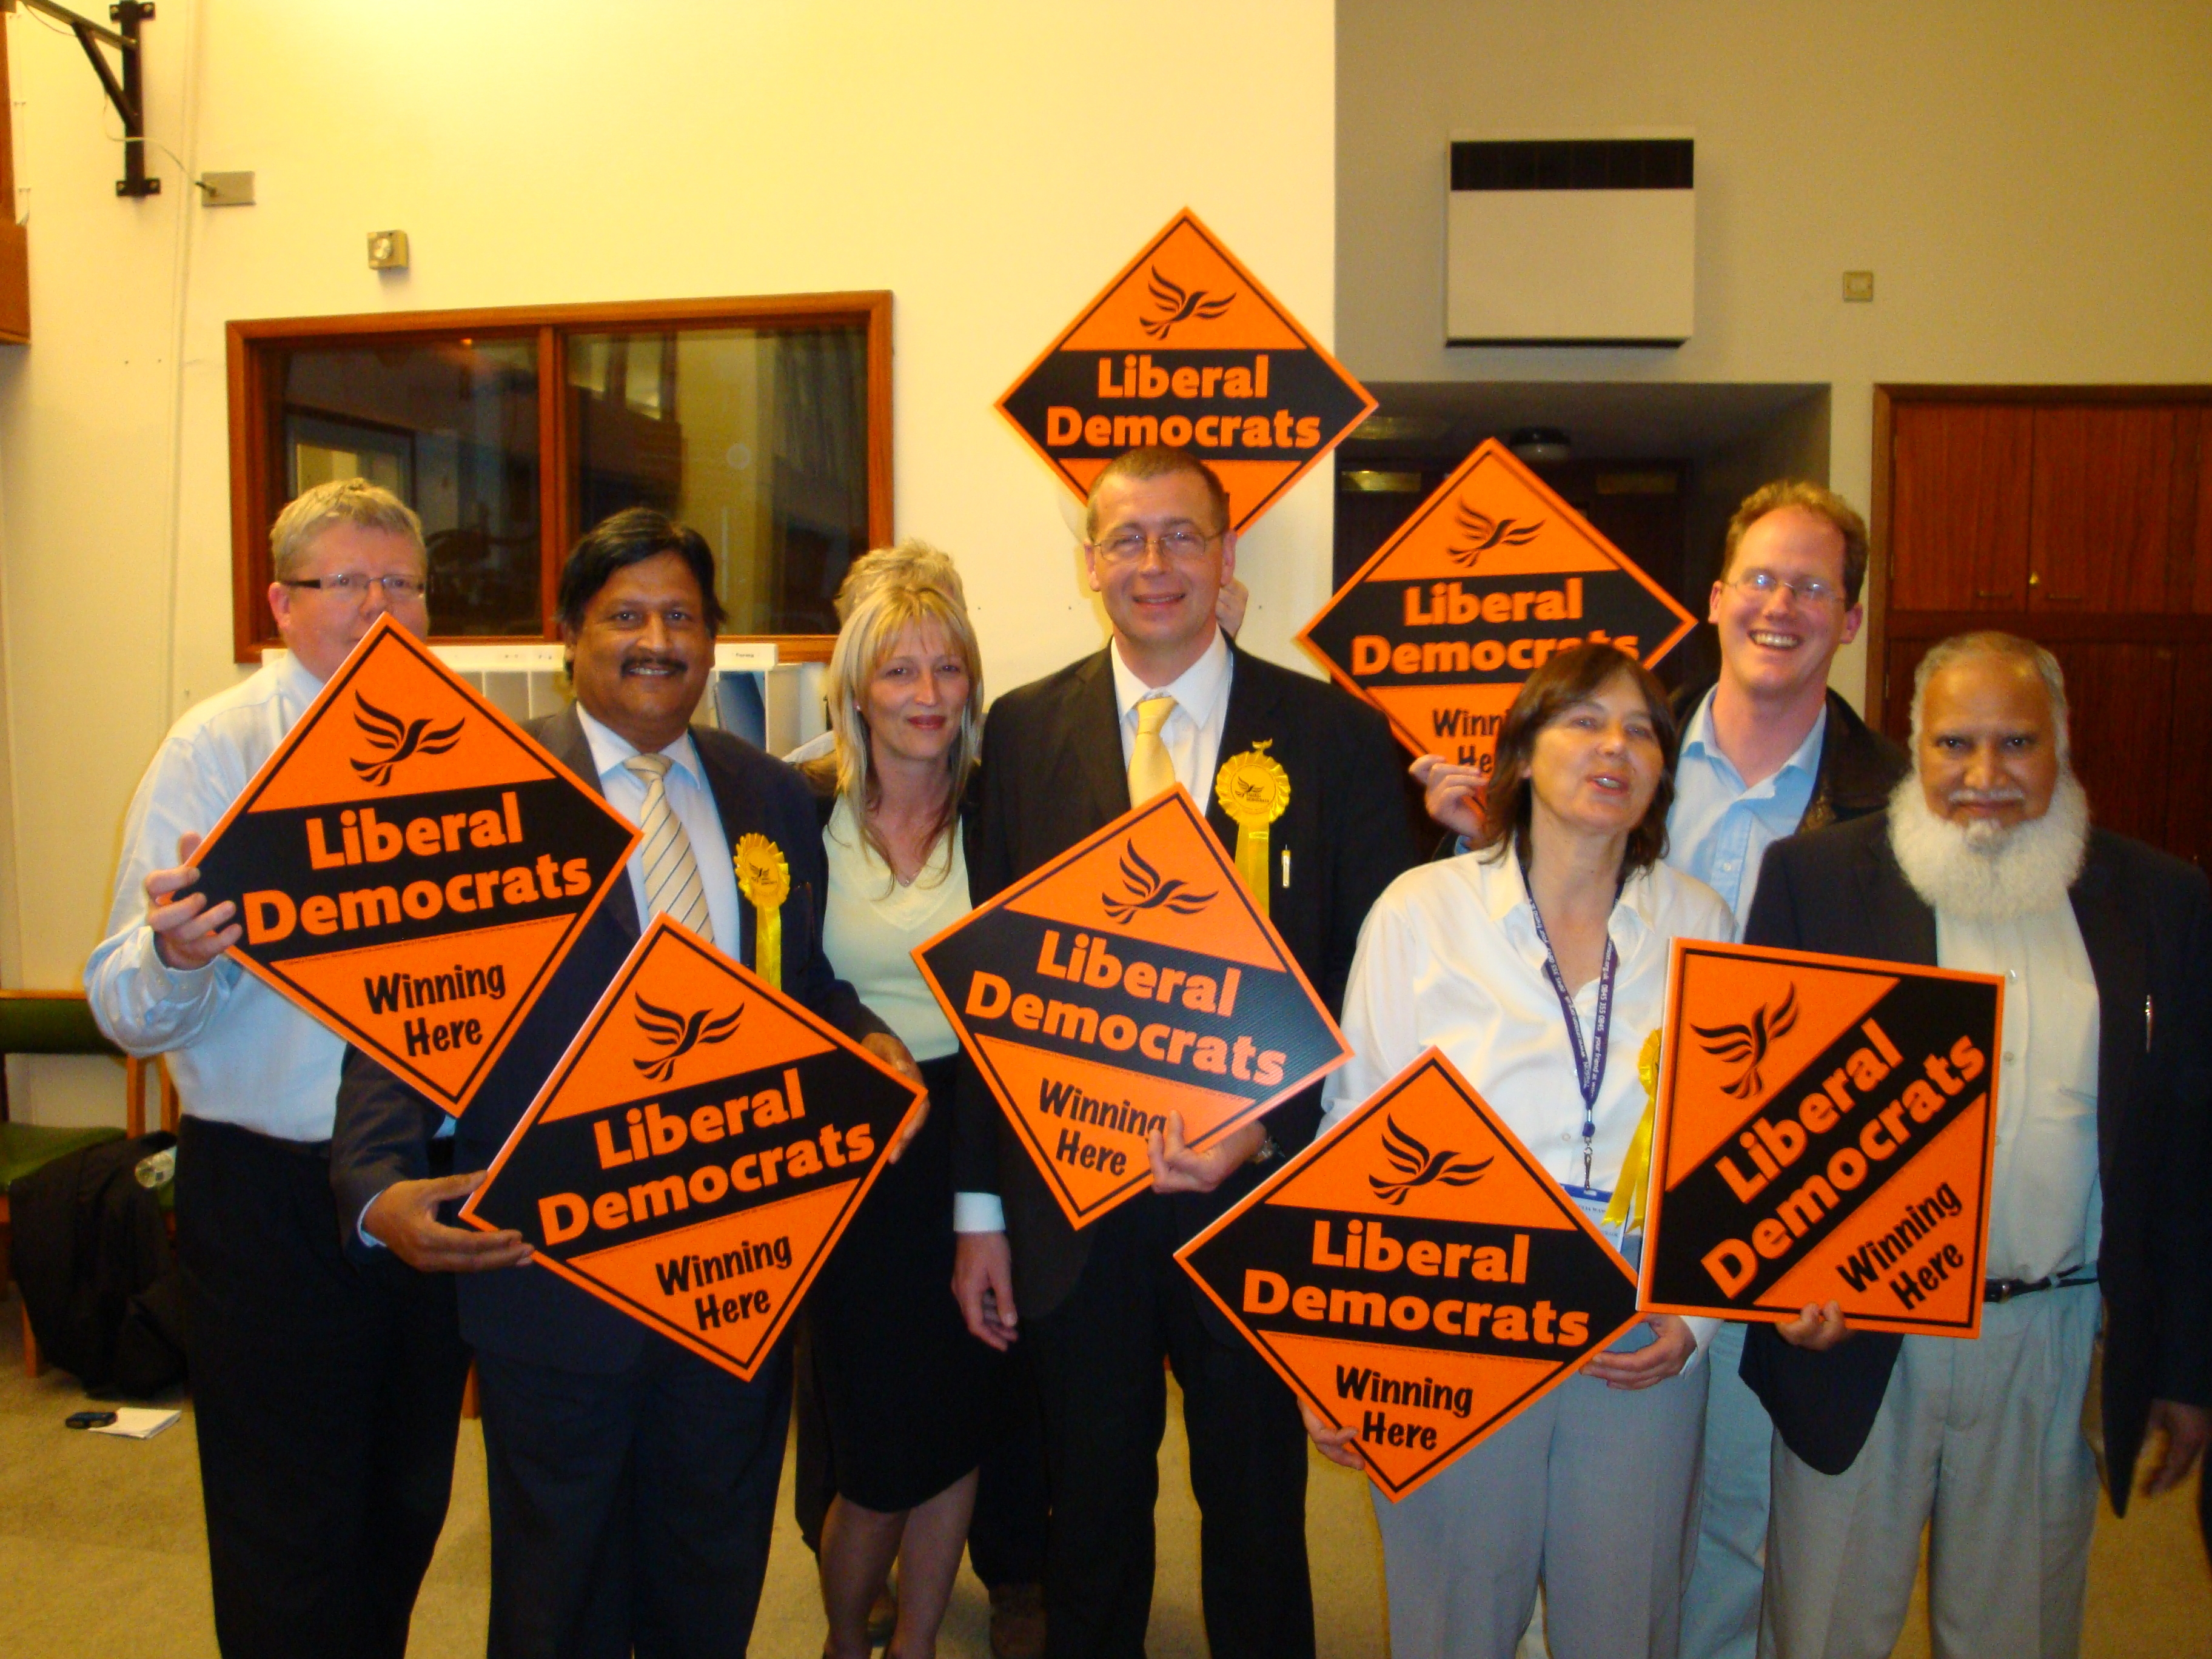 Lib Dem wins Totteridge by-election